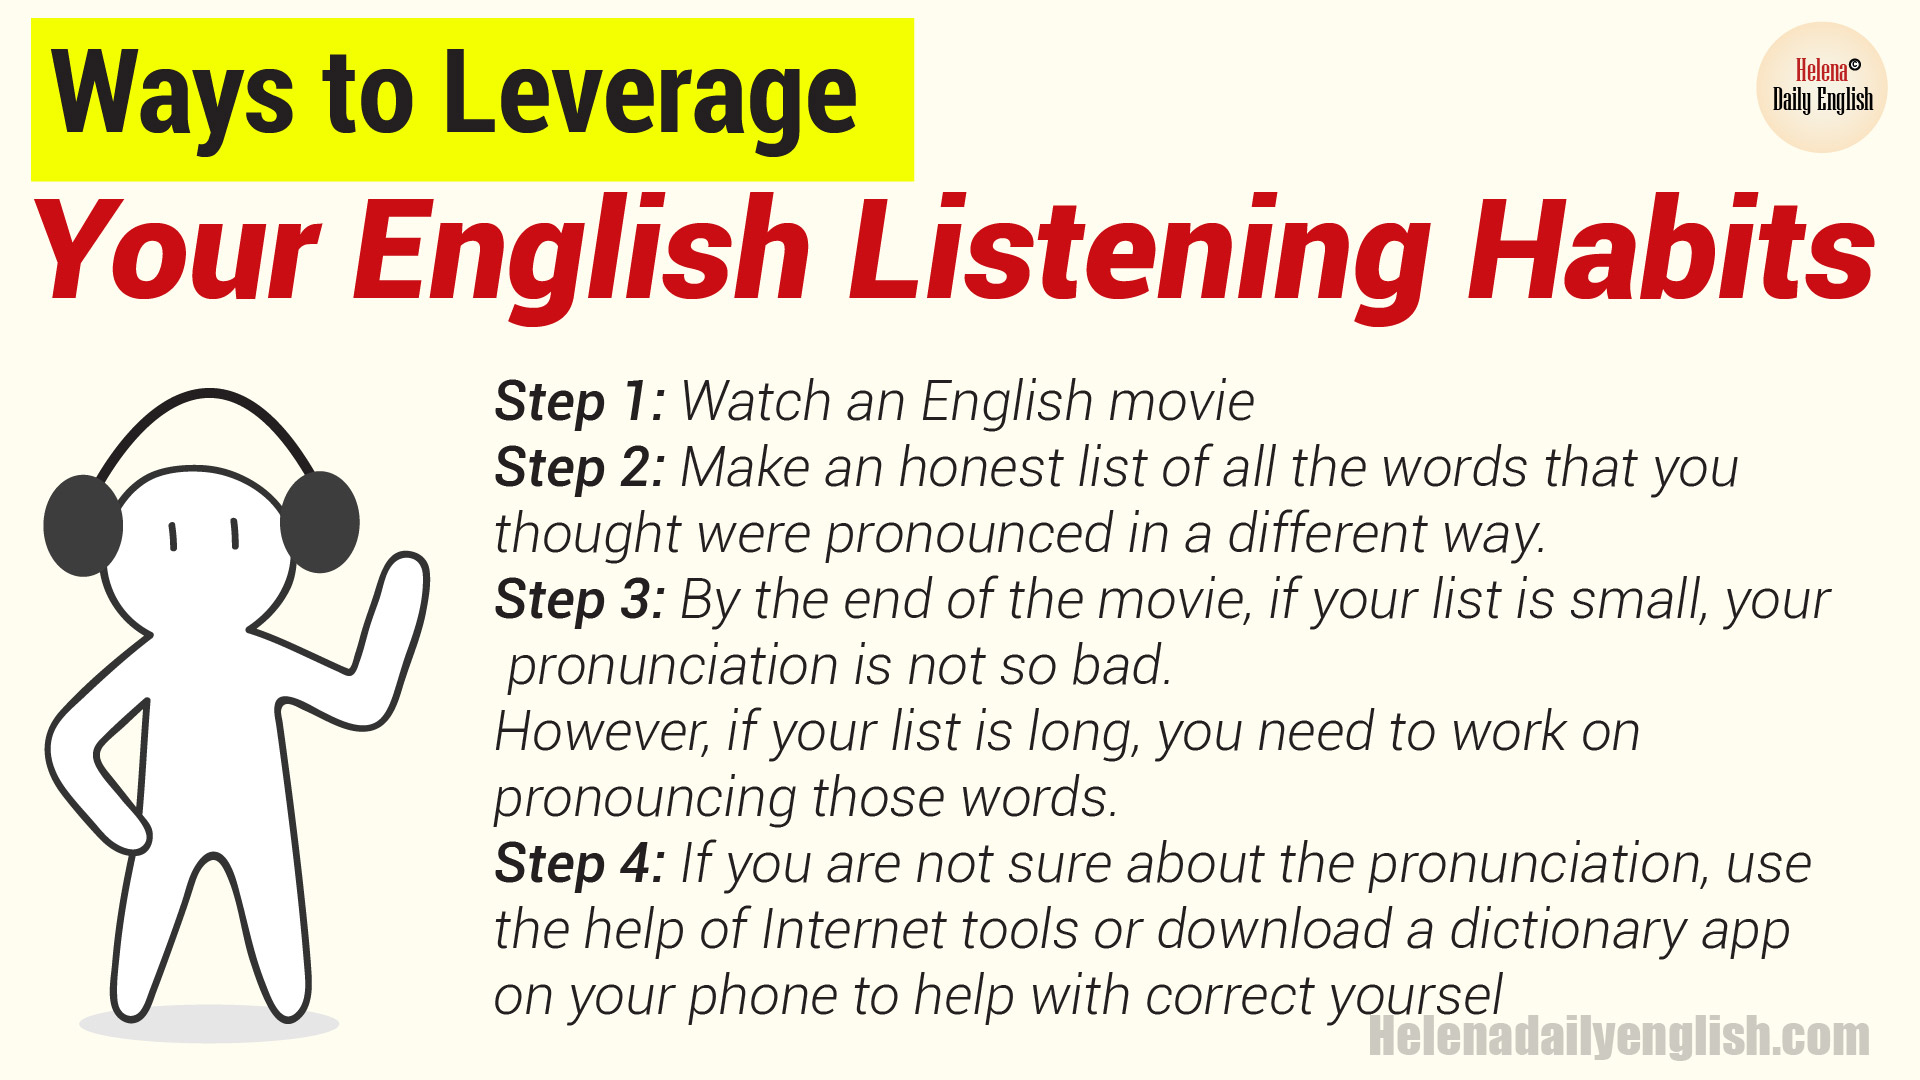 English Listening Tips: Ways to Leverage Your English Listening Habits